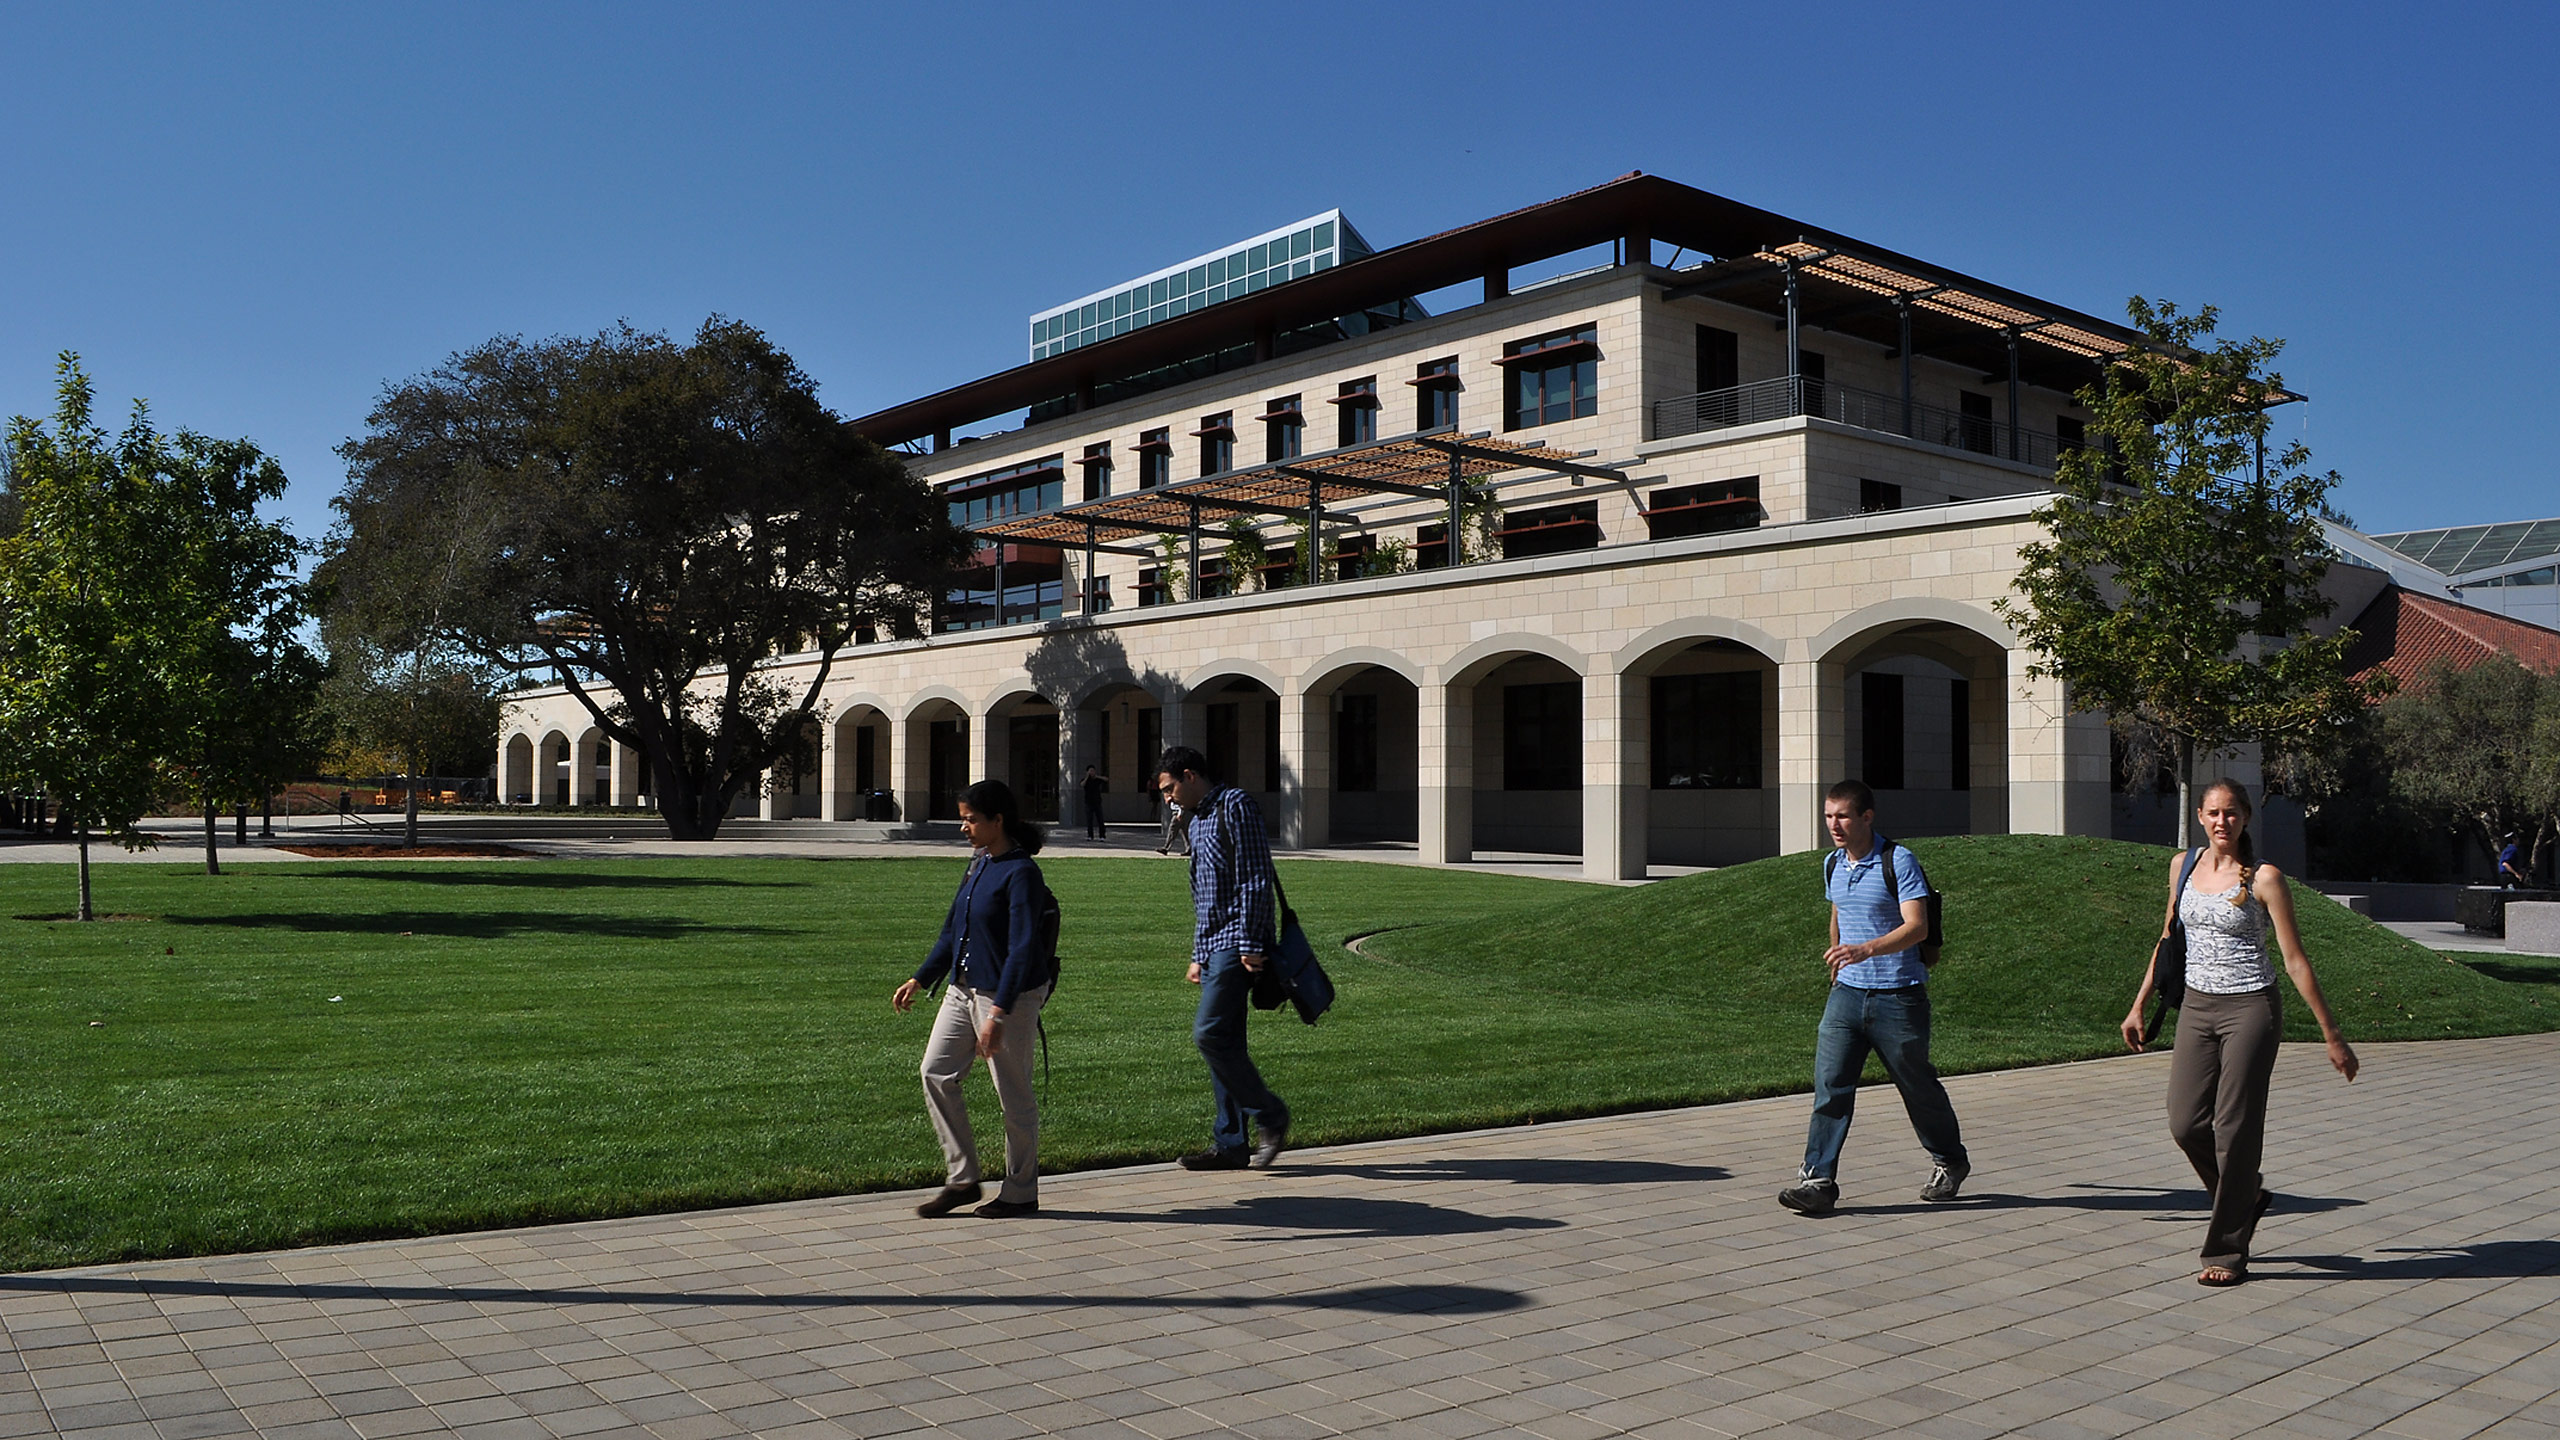 Spilker Engineering and Applied Sciences Building – Stanford University / image 2